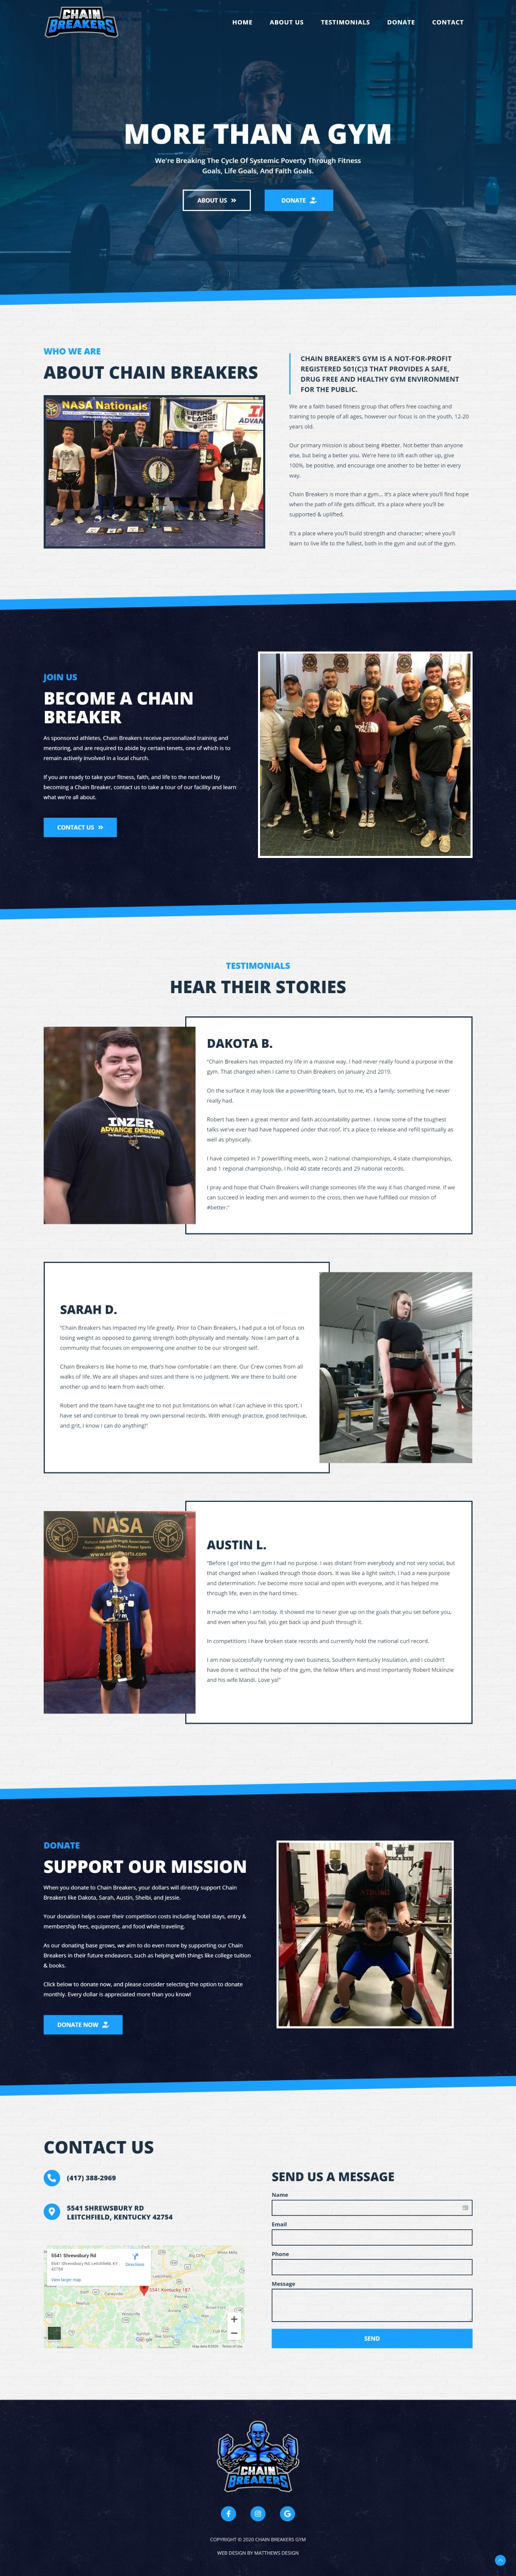 Chain Breakers Gym Website Design by Matthews Design